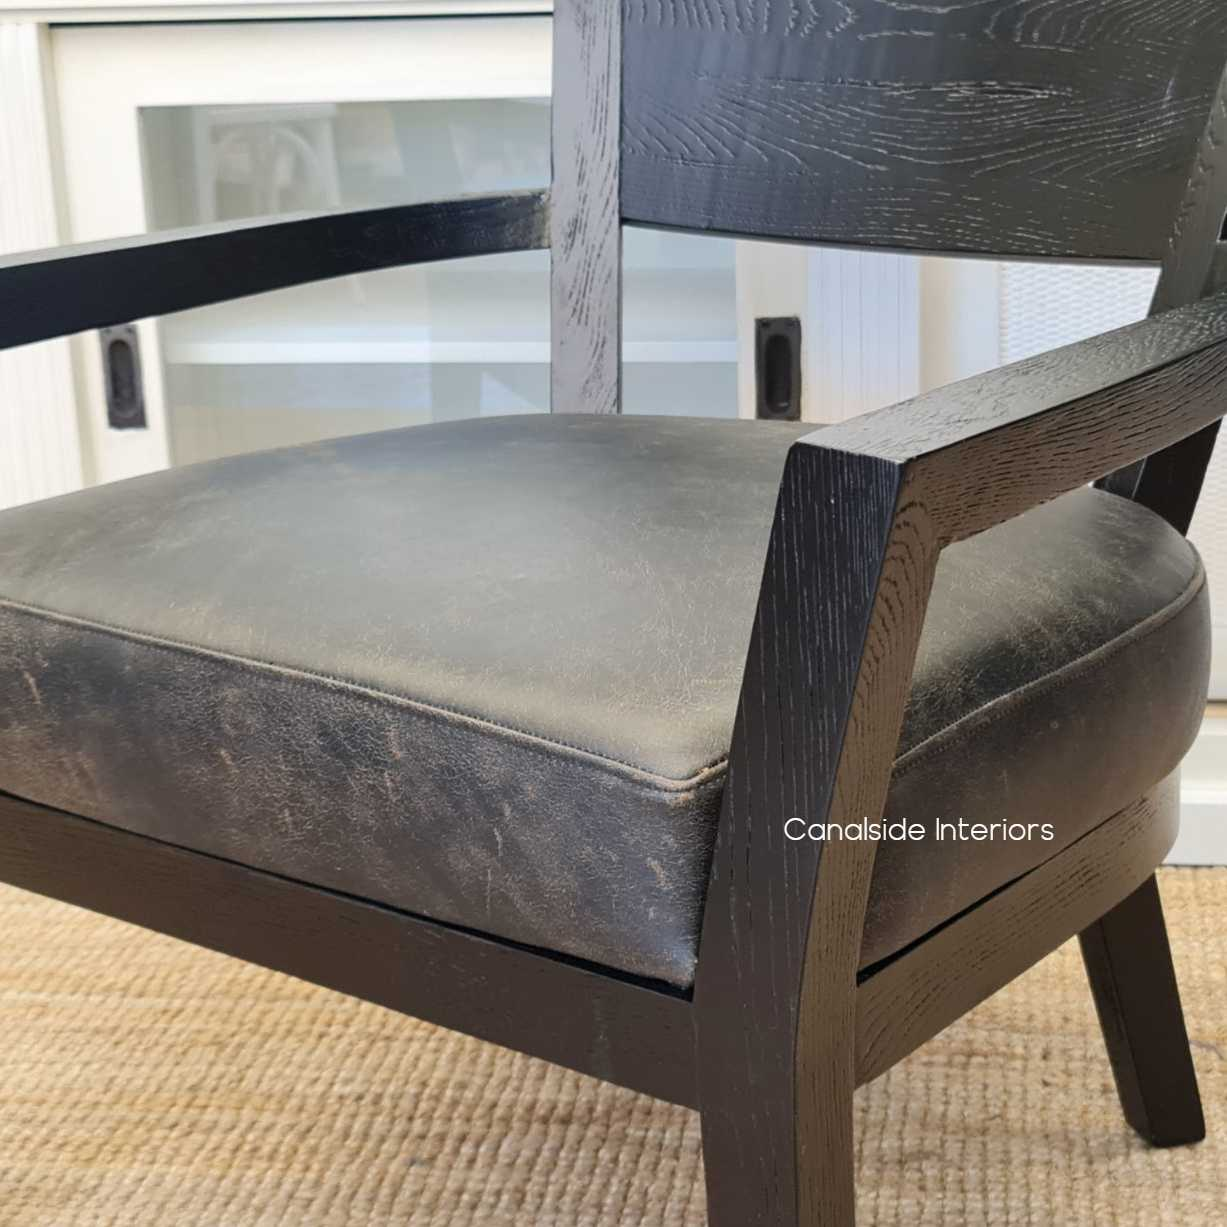 Vettel Aged Leather Armchair Espresso Leather Distressed Chair Chairs Armchairs Living Room Lounge Room Family Room Mancave Leather Chair Occasional Modern Contemporary Hamptons Masculine